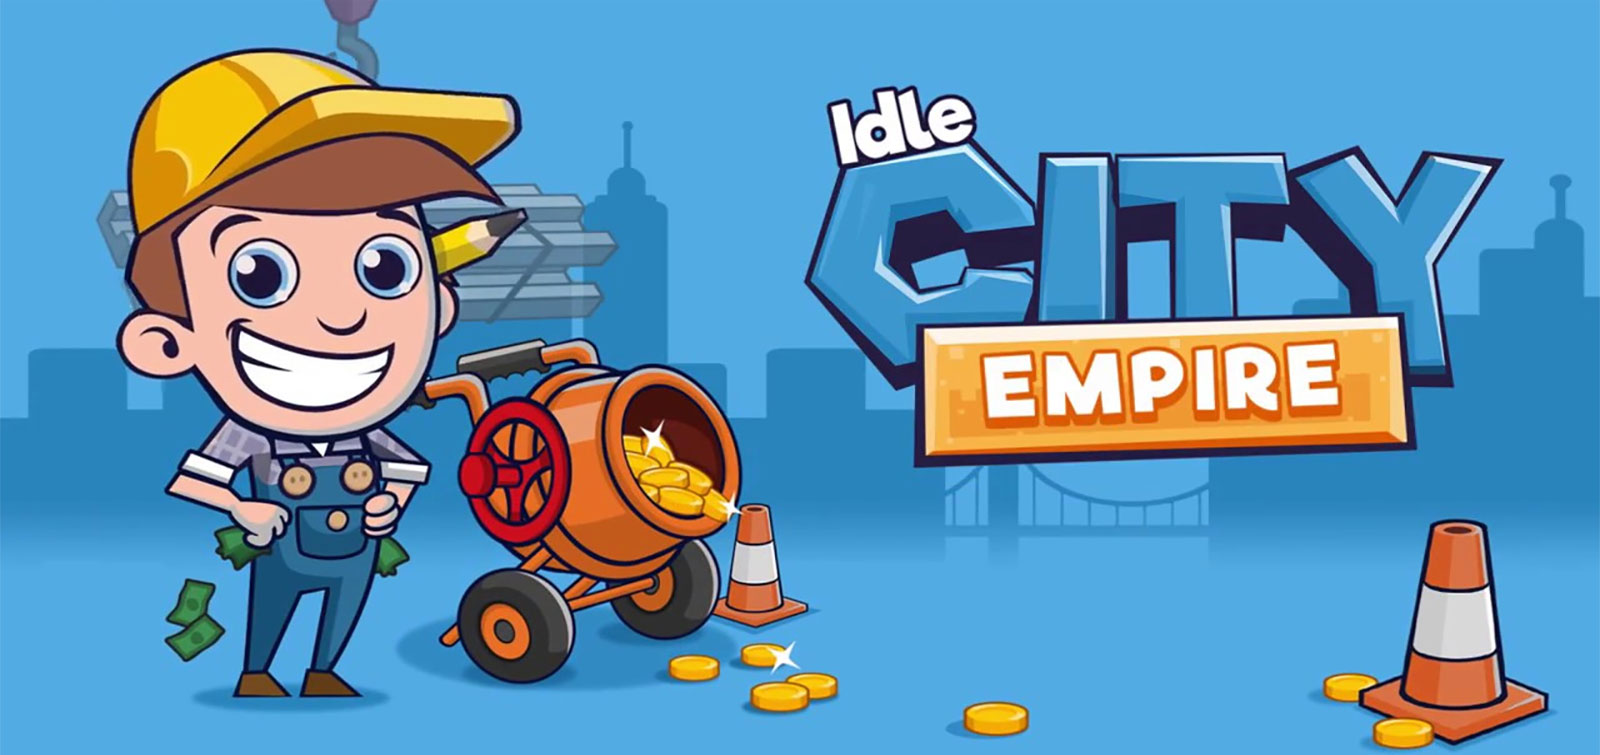 Idle City Empire Mod Apk